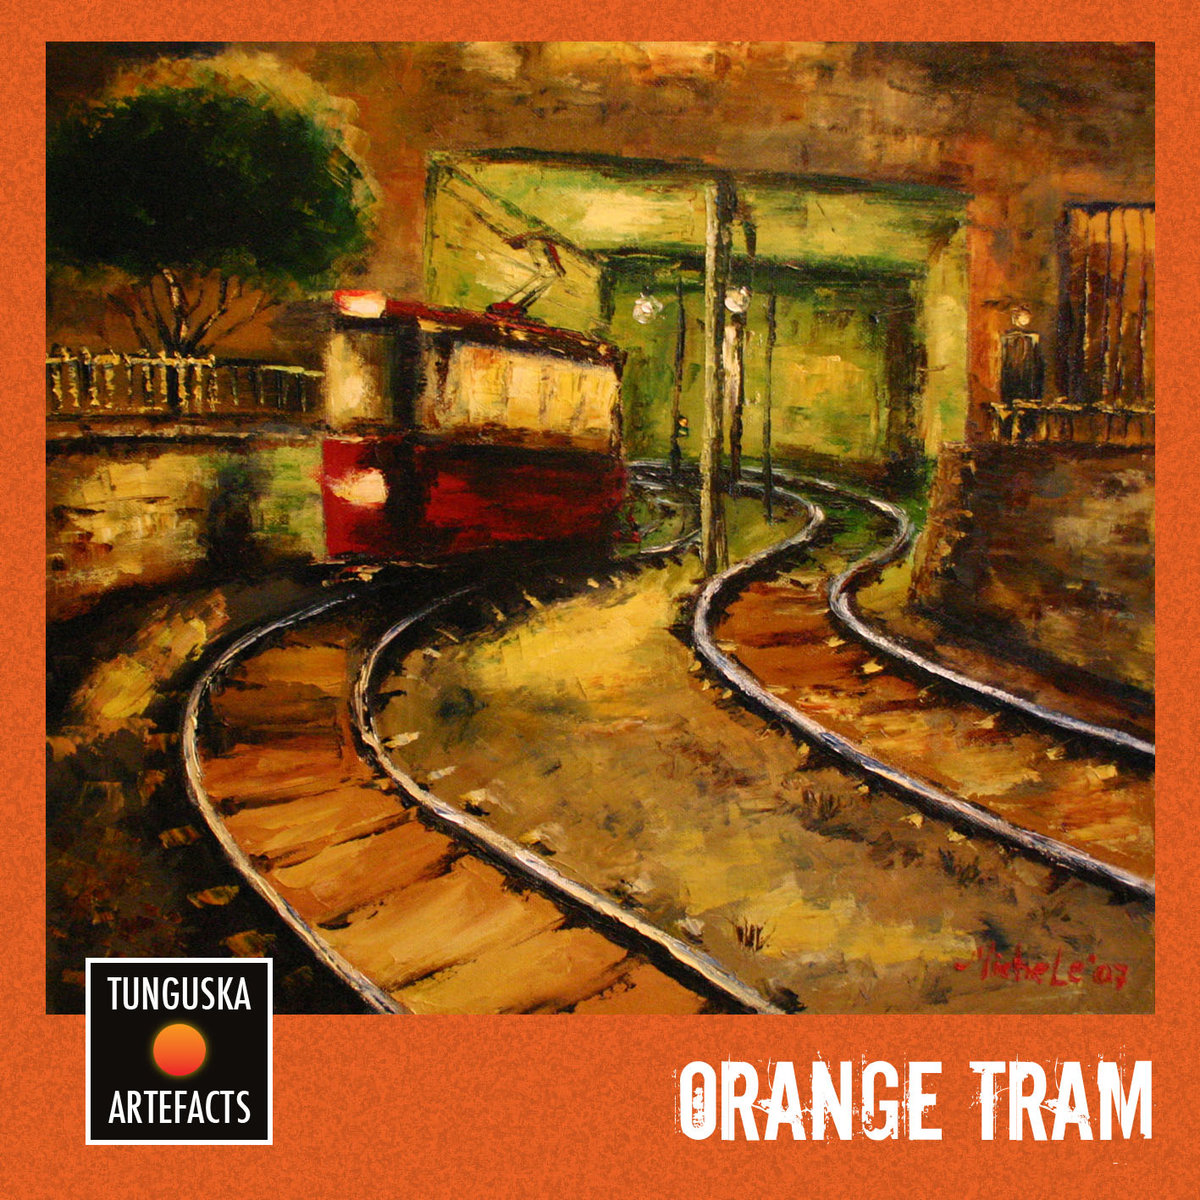 EXIT project - Old Man Story @ 'Tunguska Artefacts - Orange Tram' album (electronic, ambient)